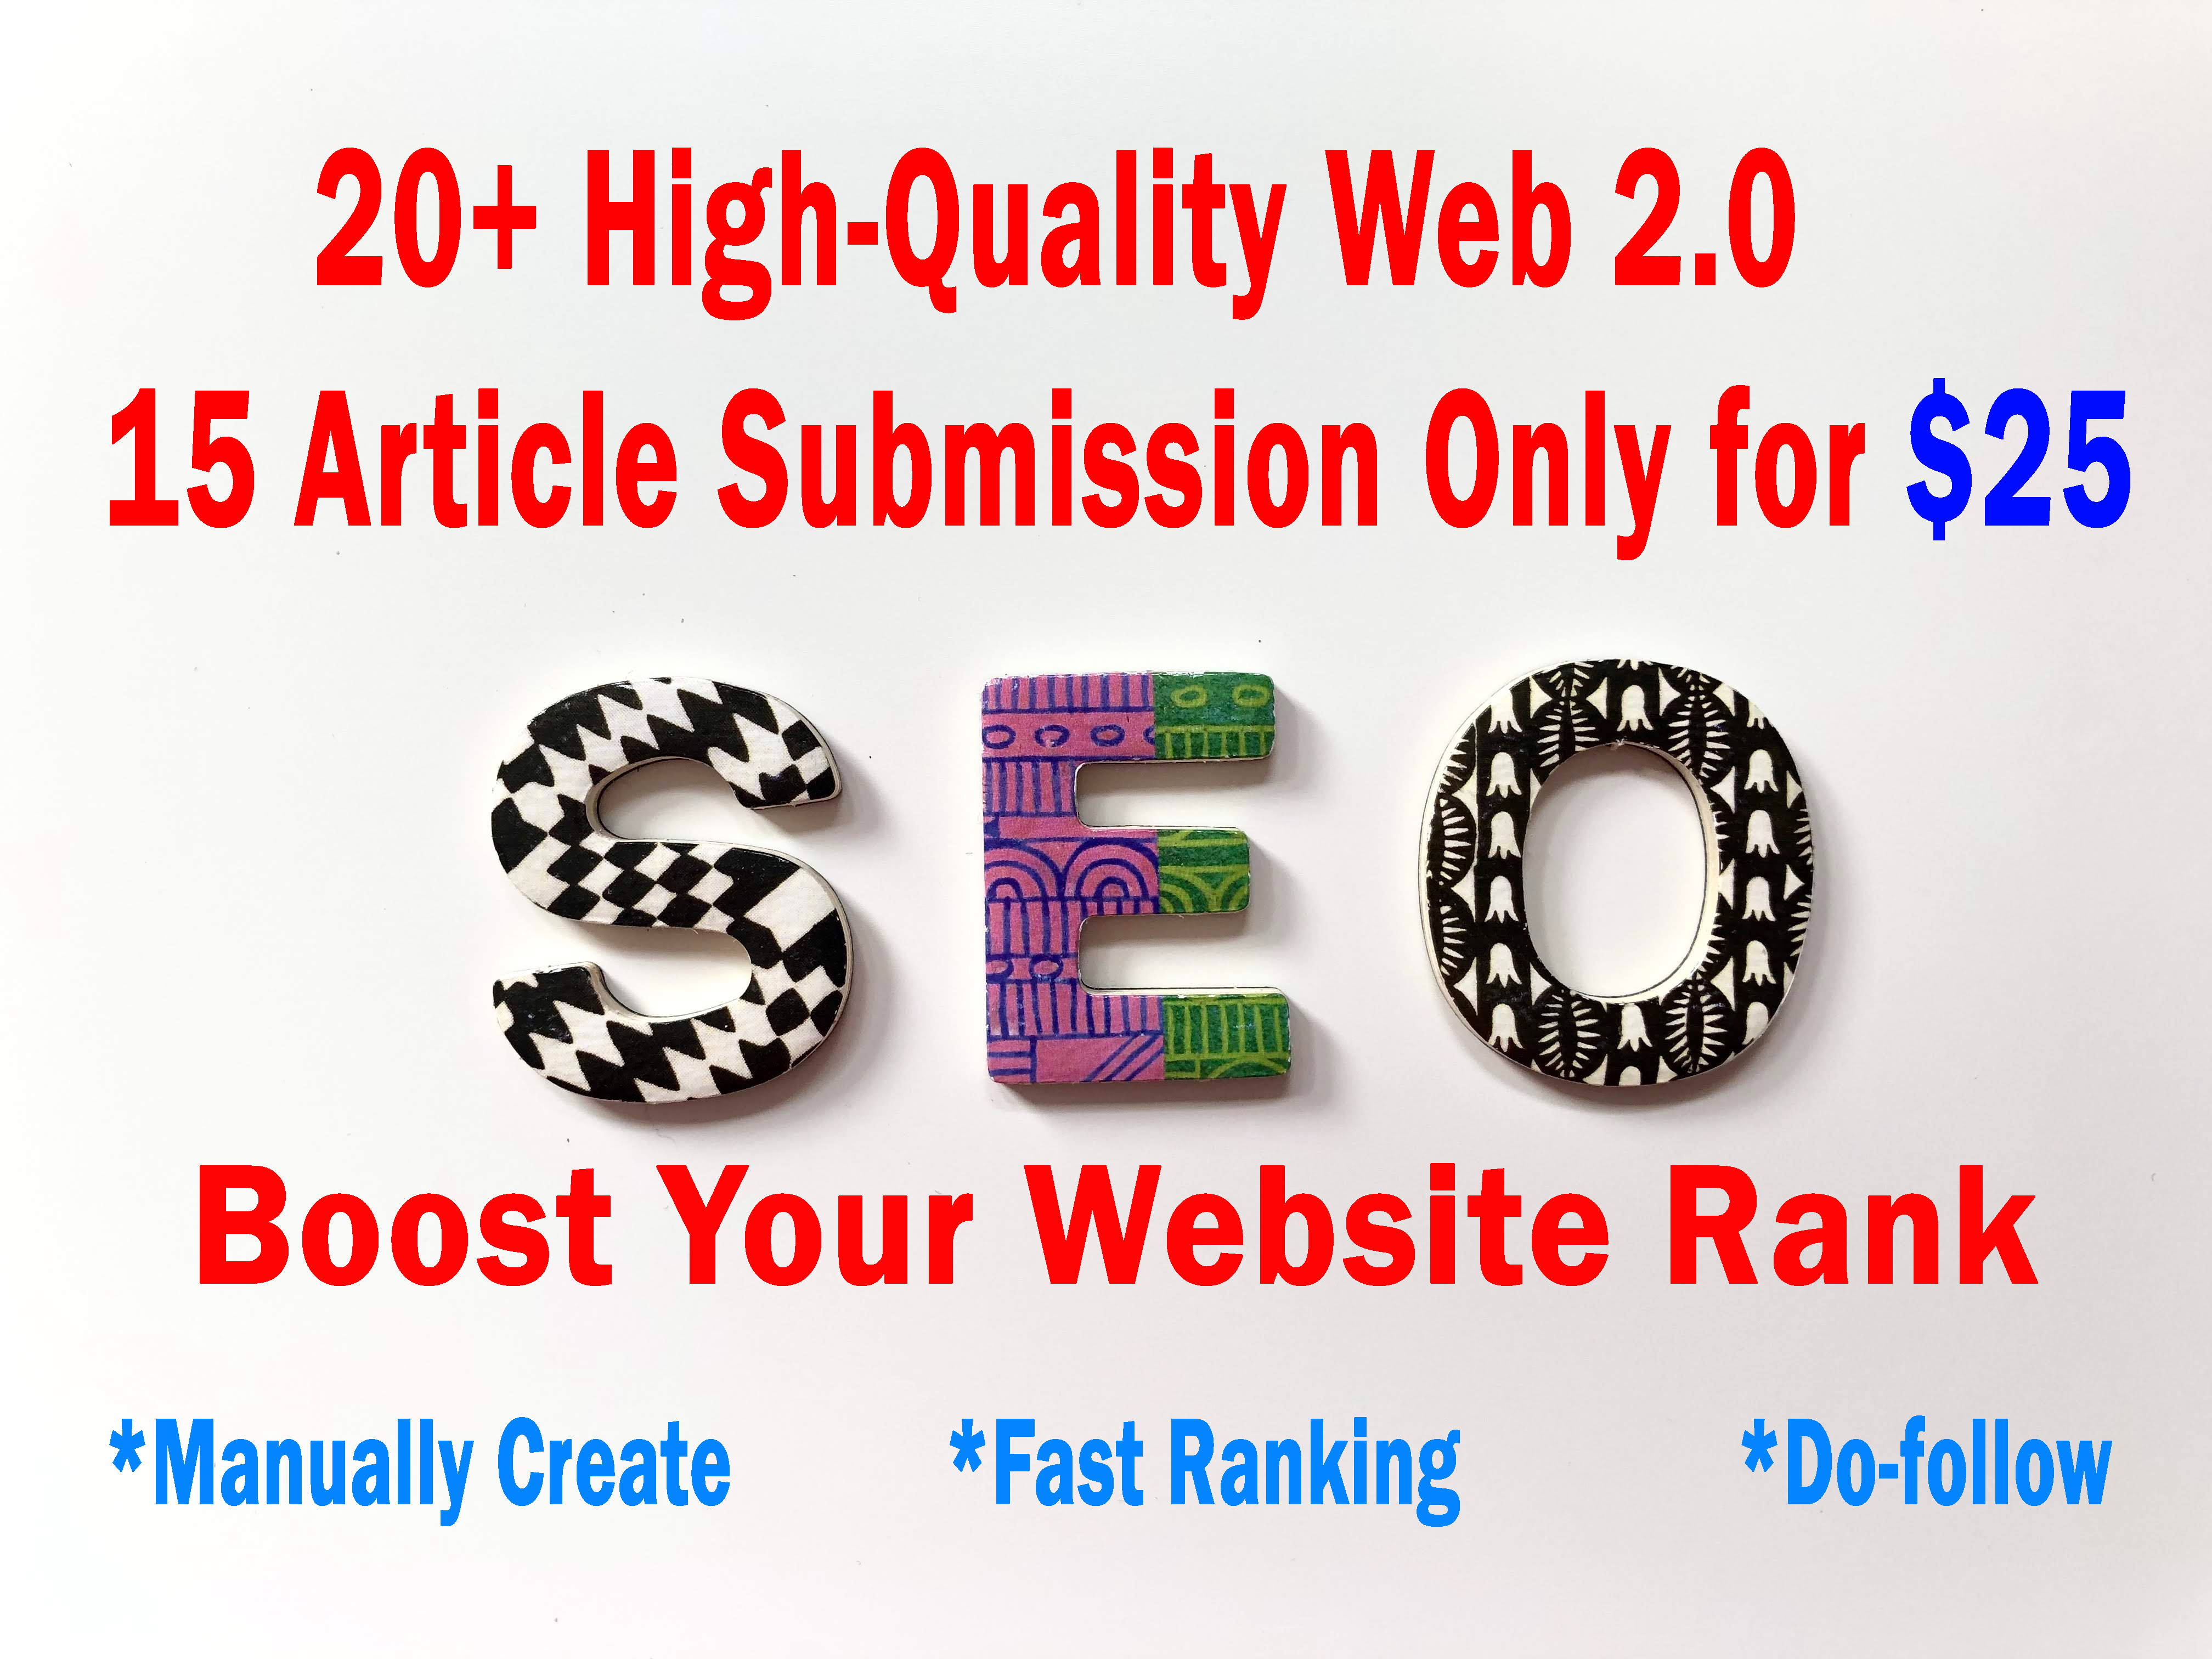 20 web 2.0 & 15 article submission including picture and unique article 25